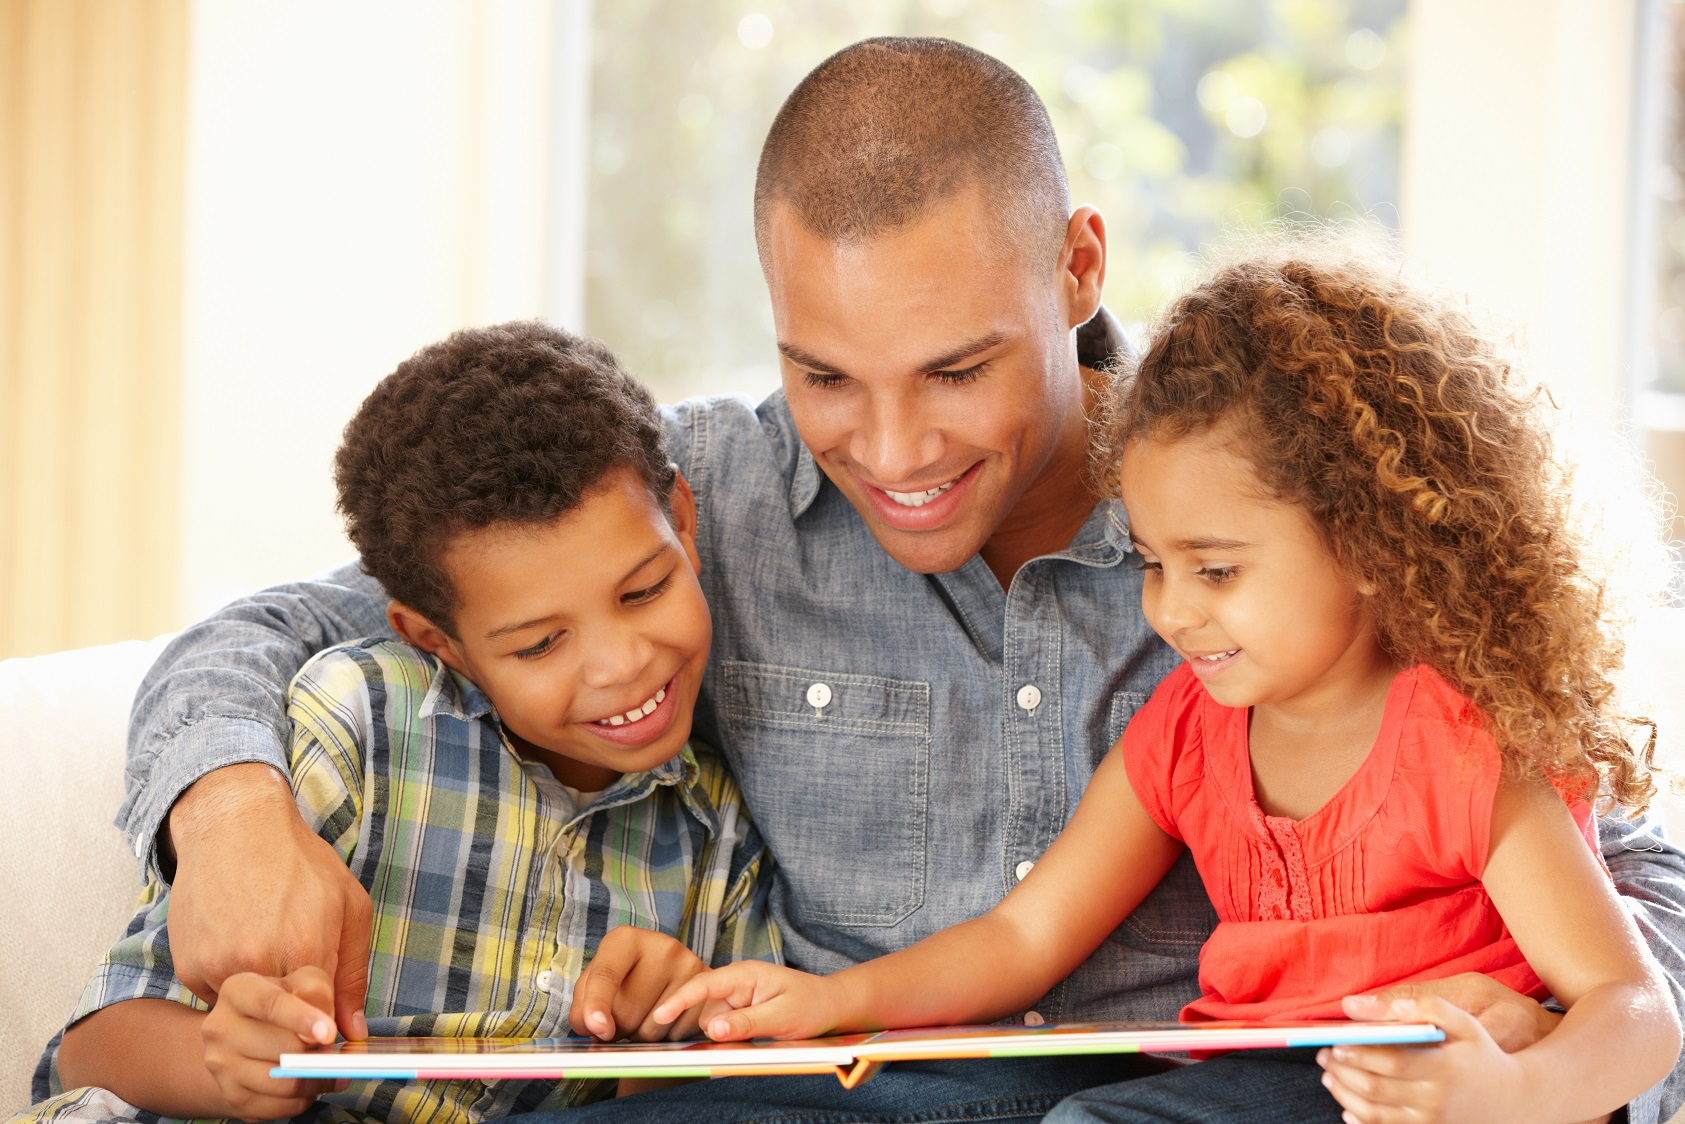 25 Great Insights On Teaching And Parenting Learners With